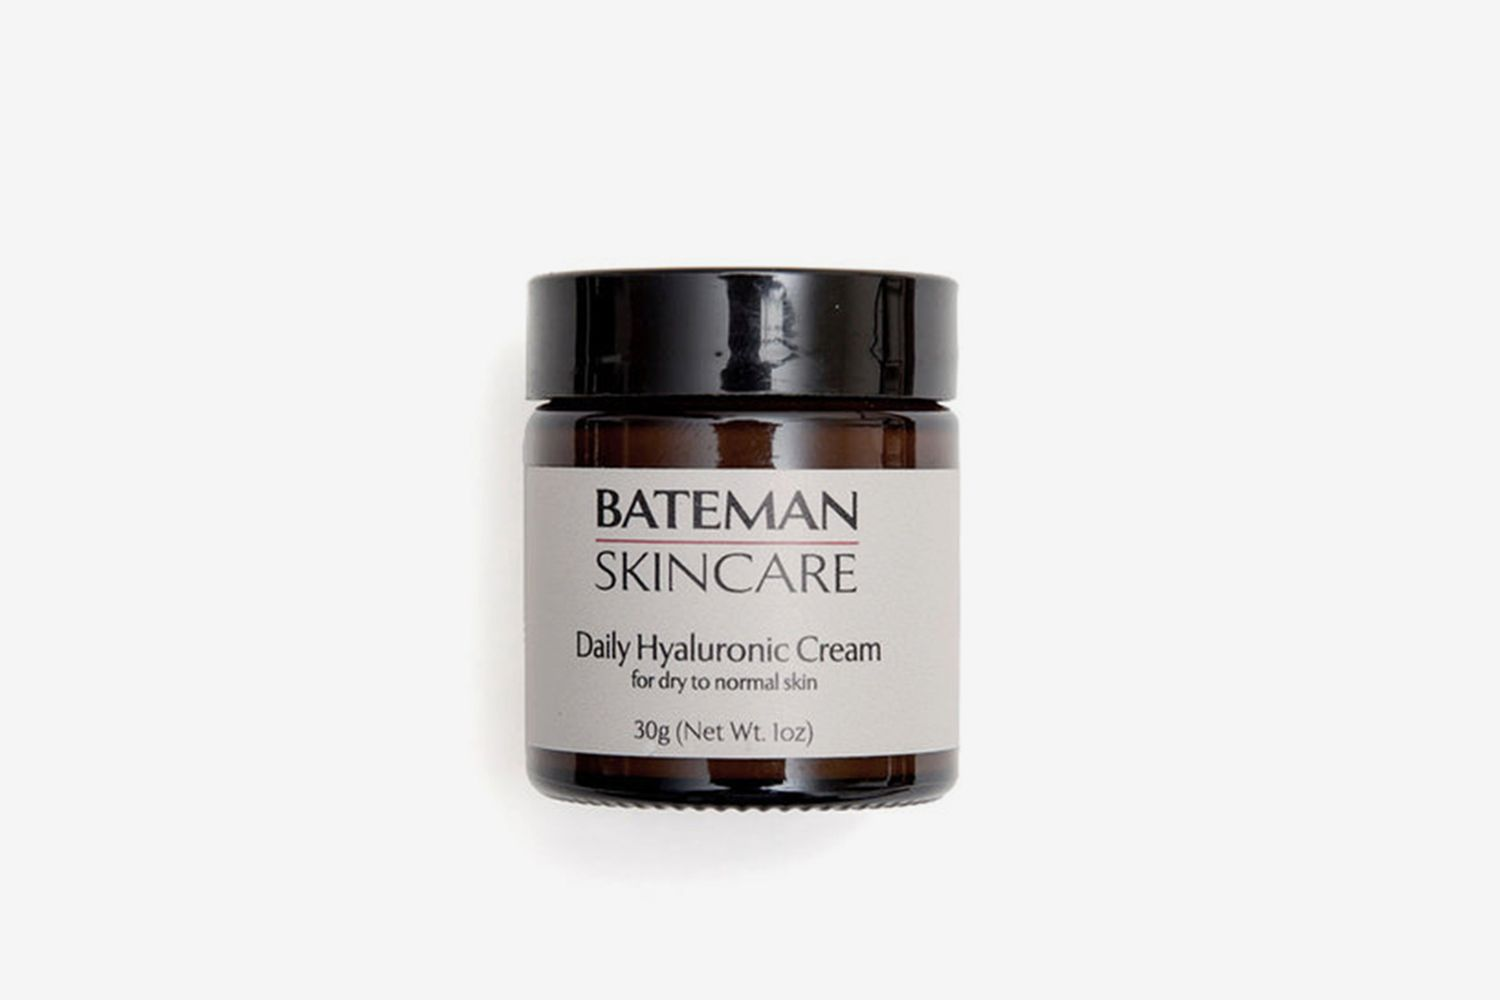 Daily Hyaluronic Cream